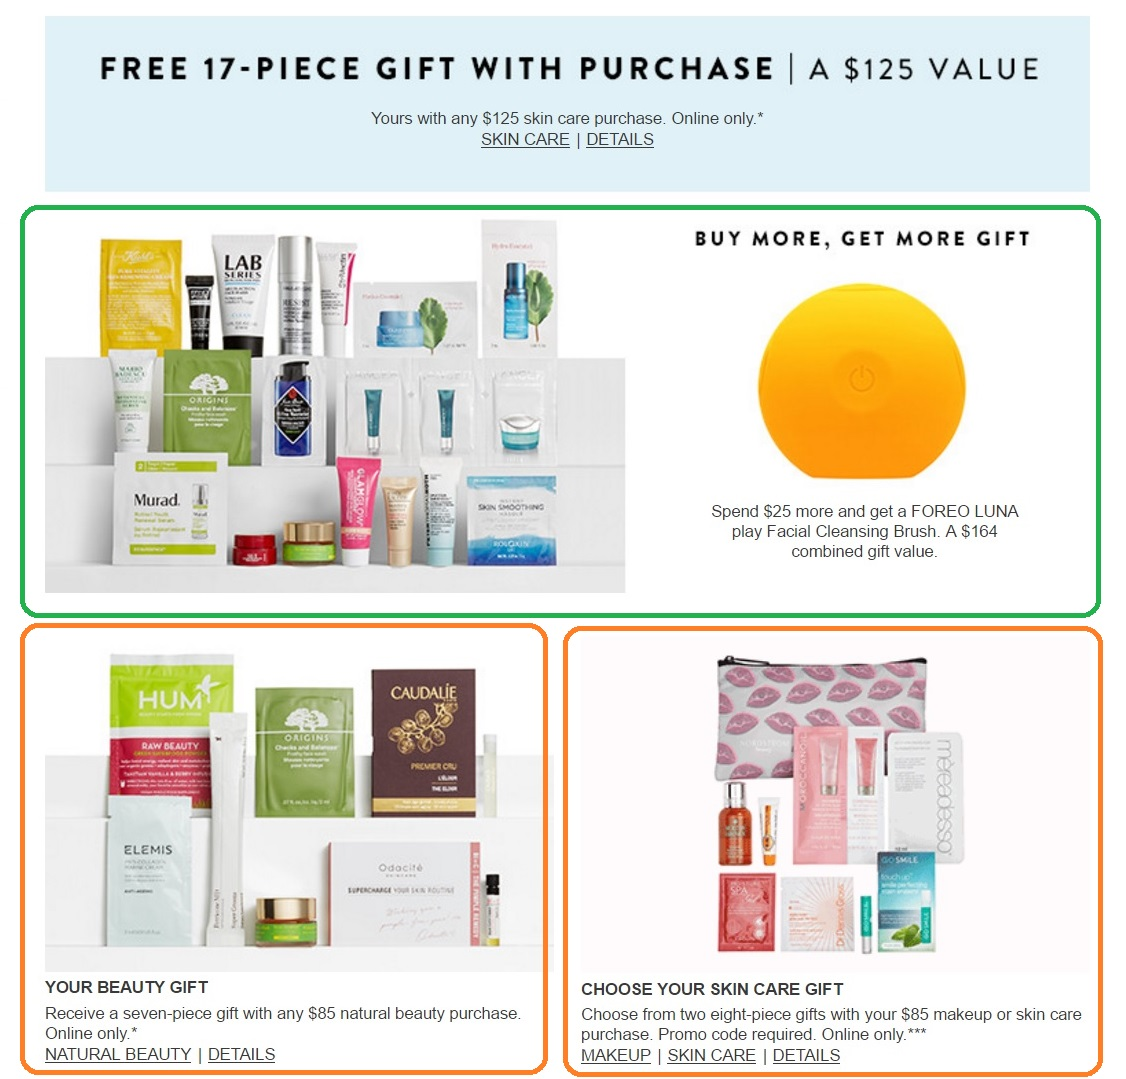 Nordstrom spring beauty event, march, beauty gift with purchase